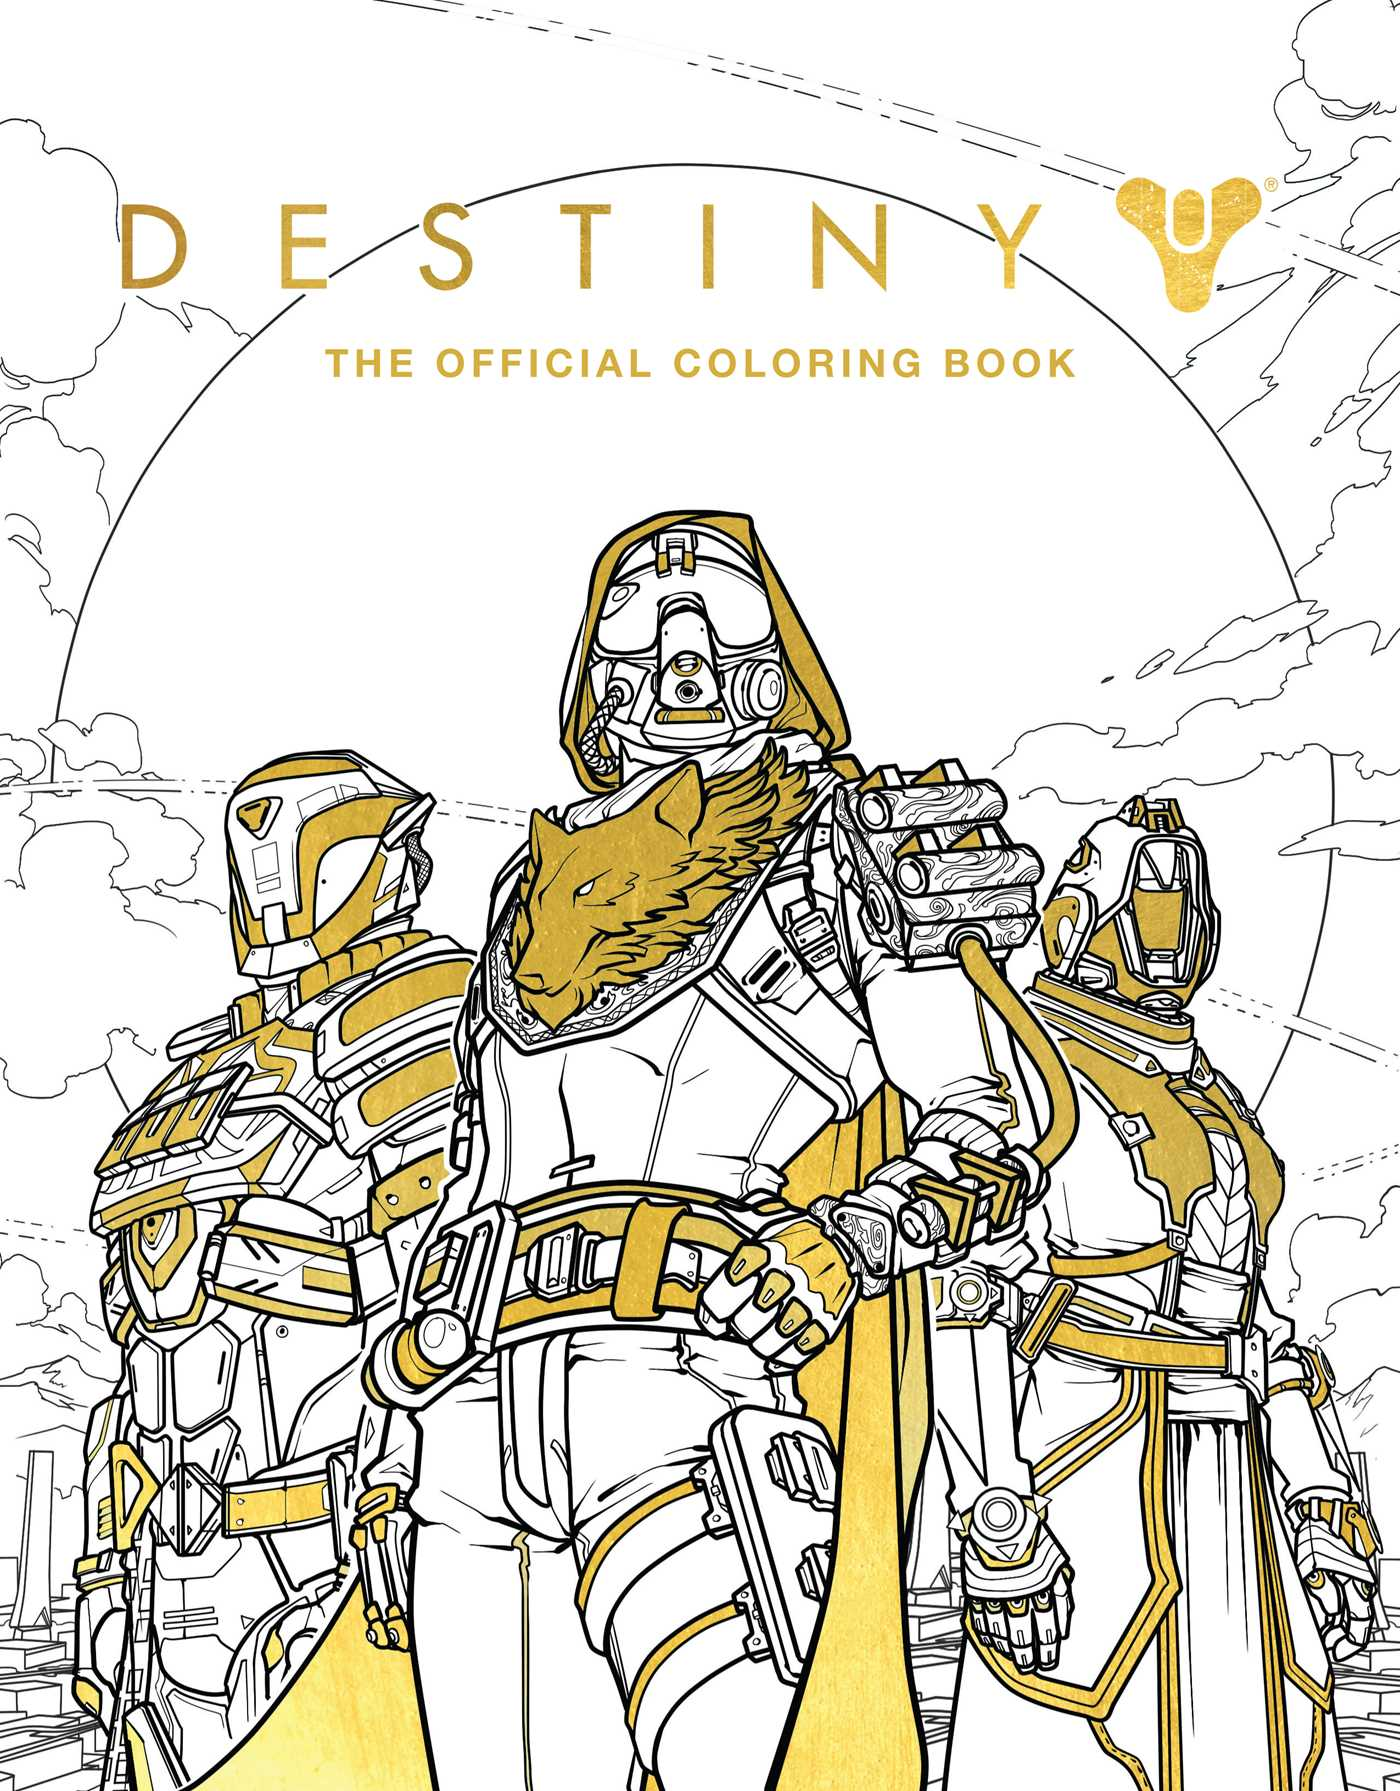 Destiny The Official Coloring